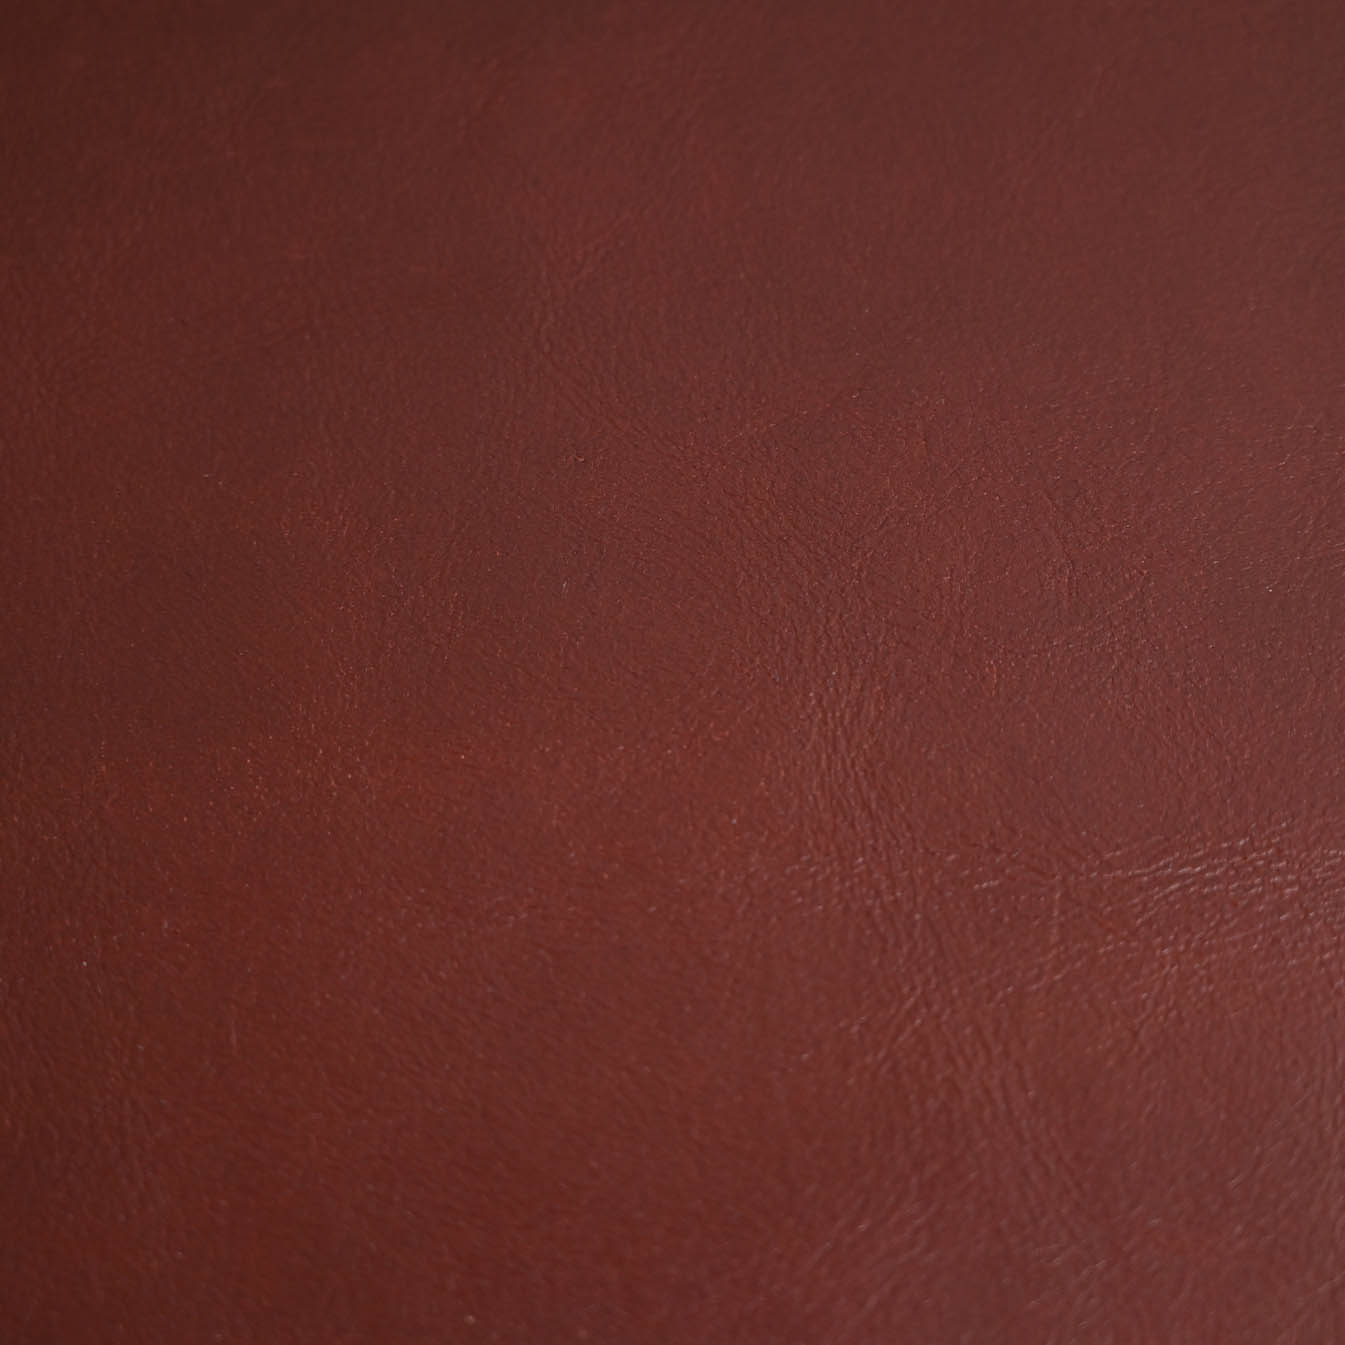 pullup leather in oxblood color